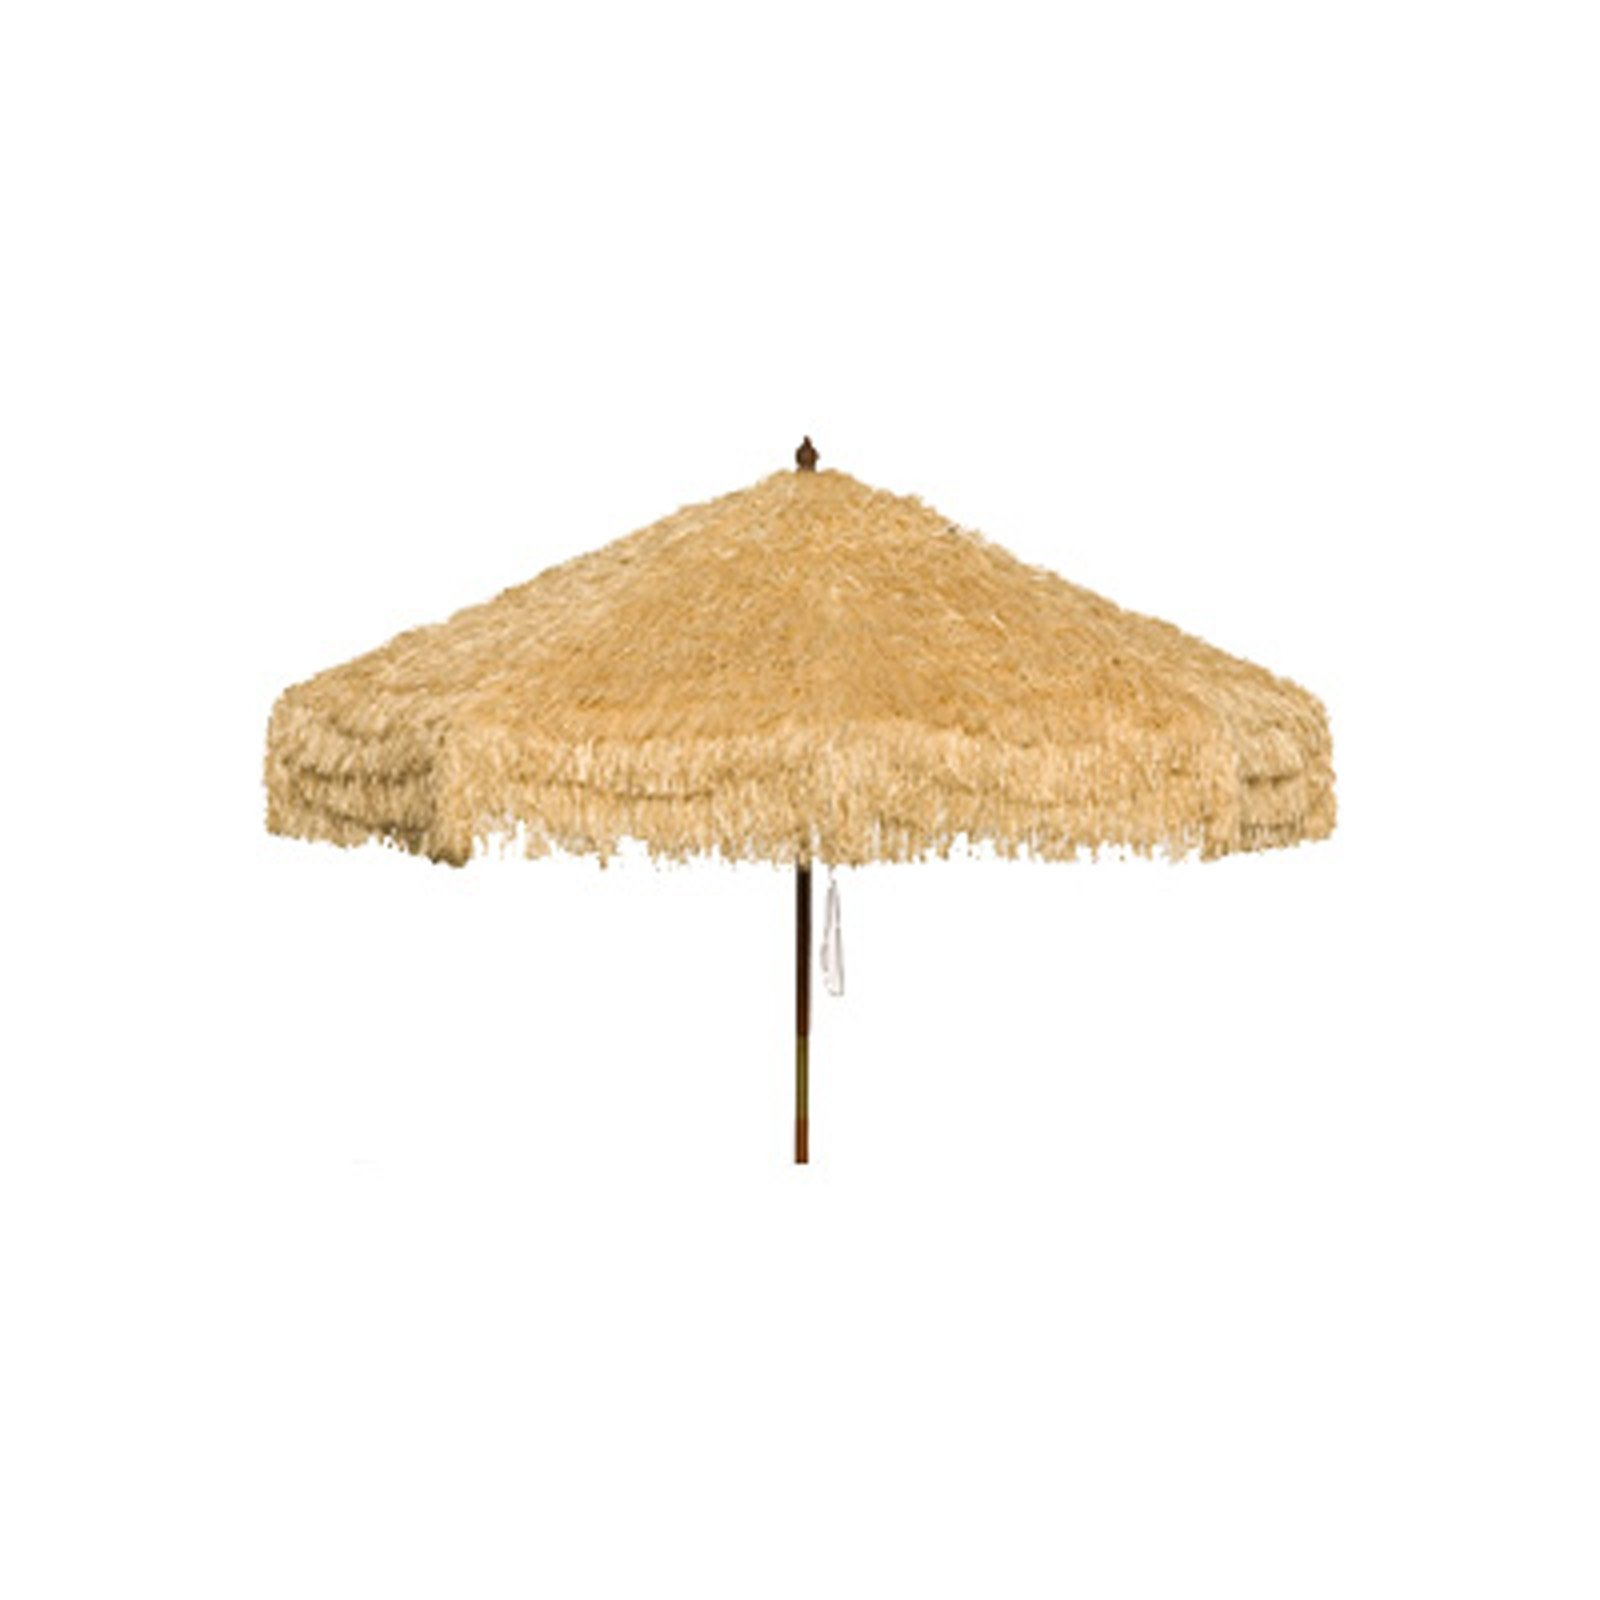 Palapa Tiki Push/Tilt Natural Cream Umbrella 9 foot - Patio Pole